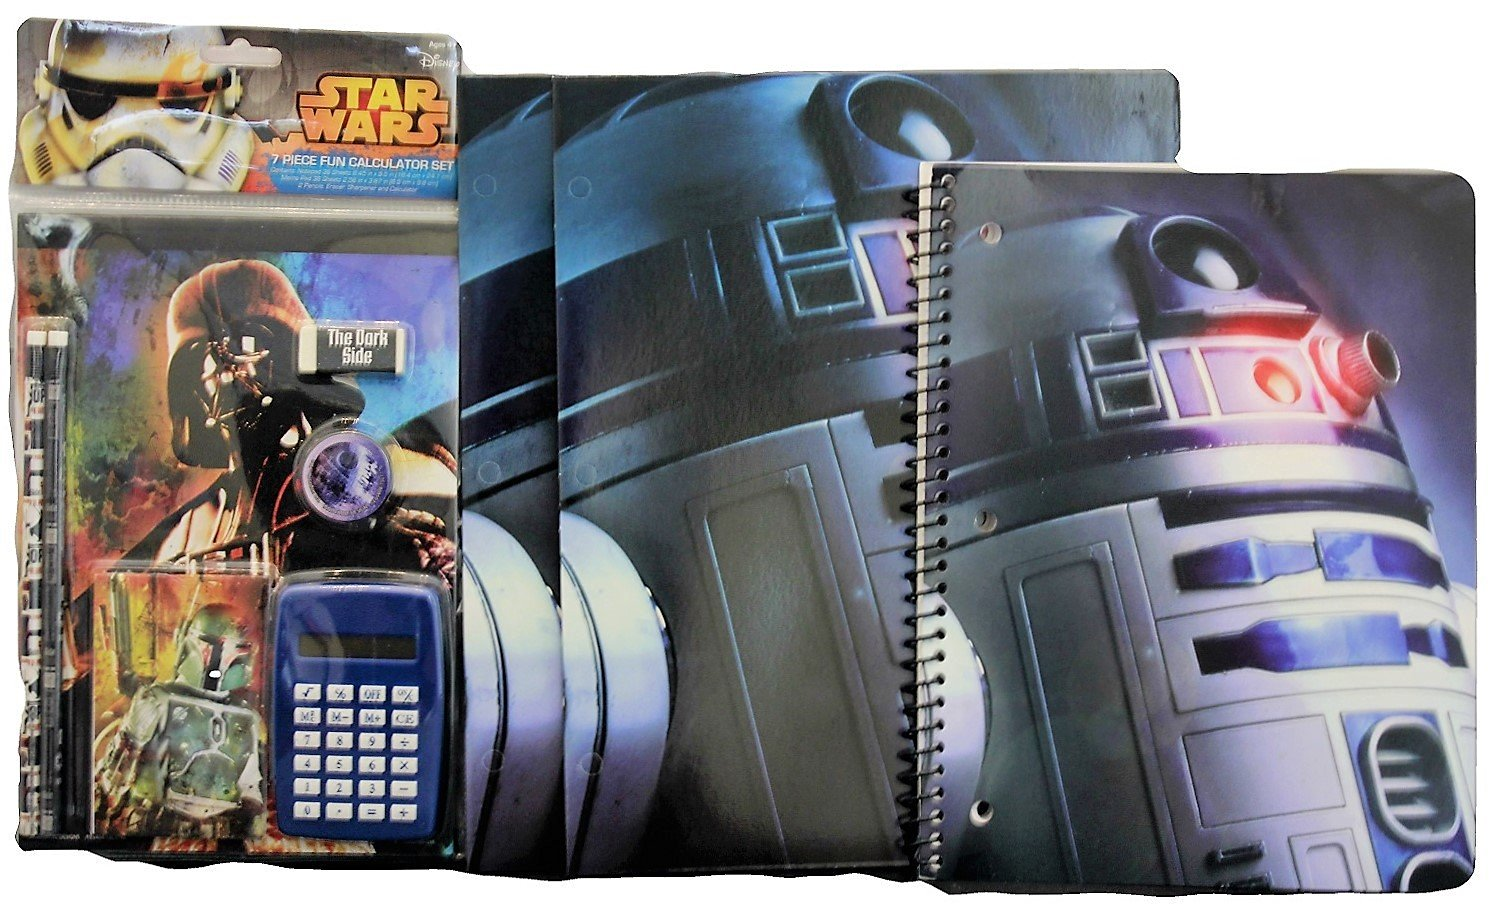 Star Wars R2D2 Back to School Classroom Supply Bundle for Elementary through College Students: 1 Spiral Notebook, 2 Pocket Folders & 7pc Calculator Set (2 Pencils, Erasers, Notepads & Sharpener)